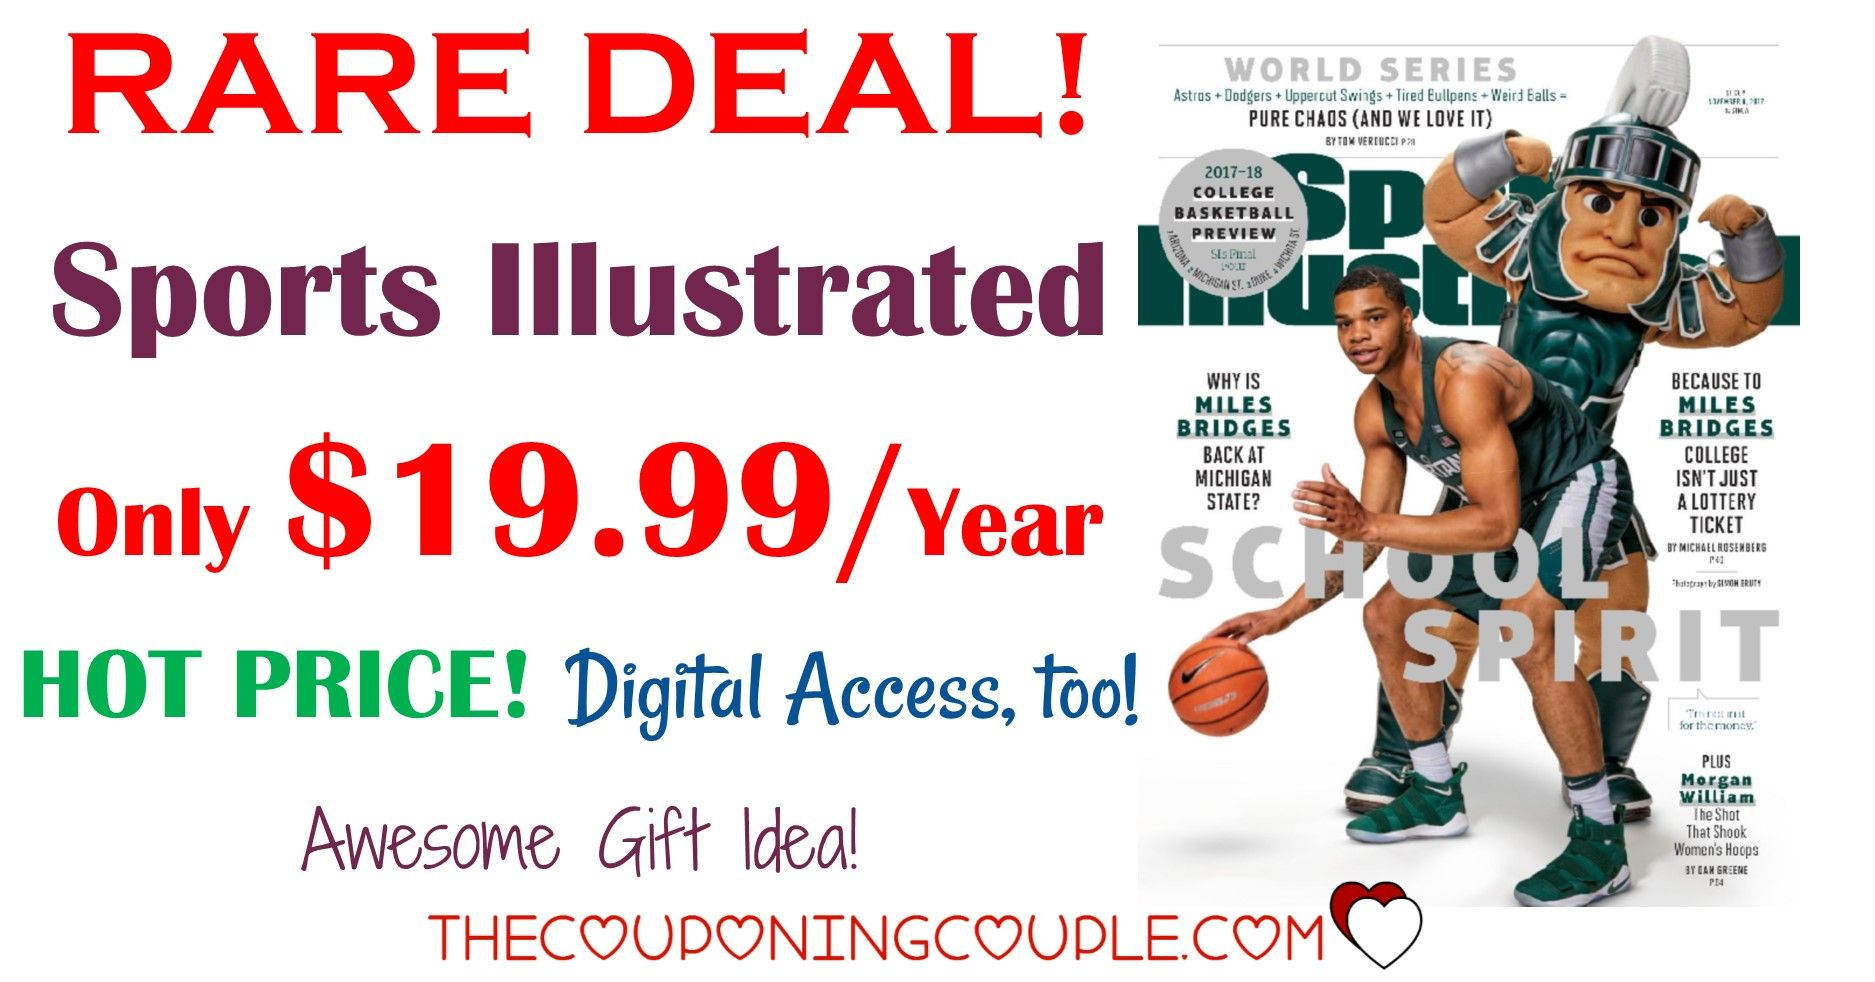 HOT DEAL! Sports Illustrated Magazine 14.99/ 2 Years